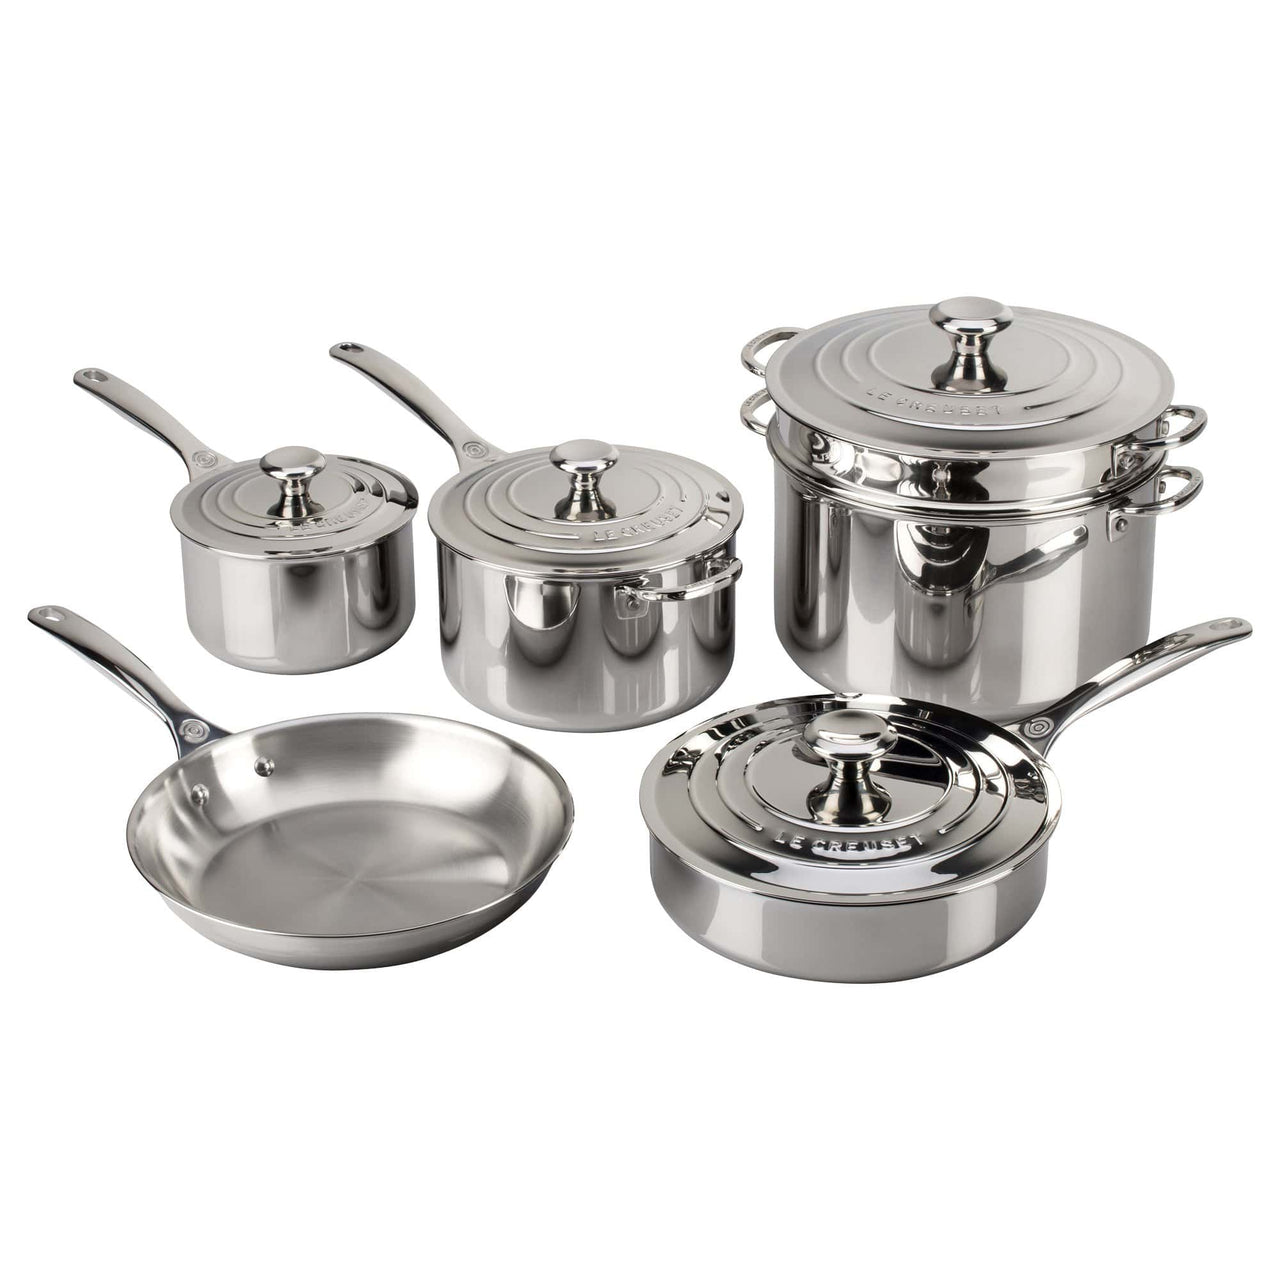 Le Creuset Cookware Stainless Steel 10-Piece Cookware Set